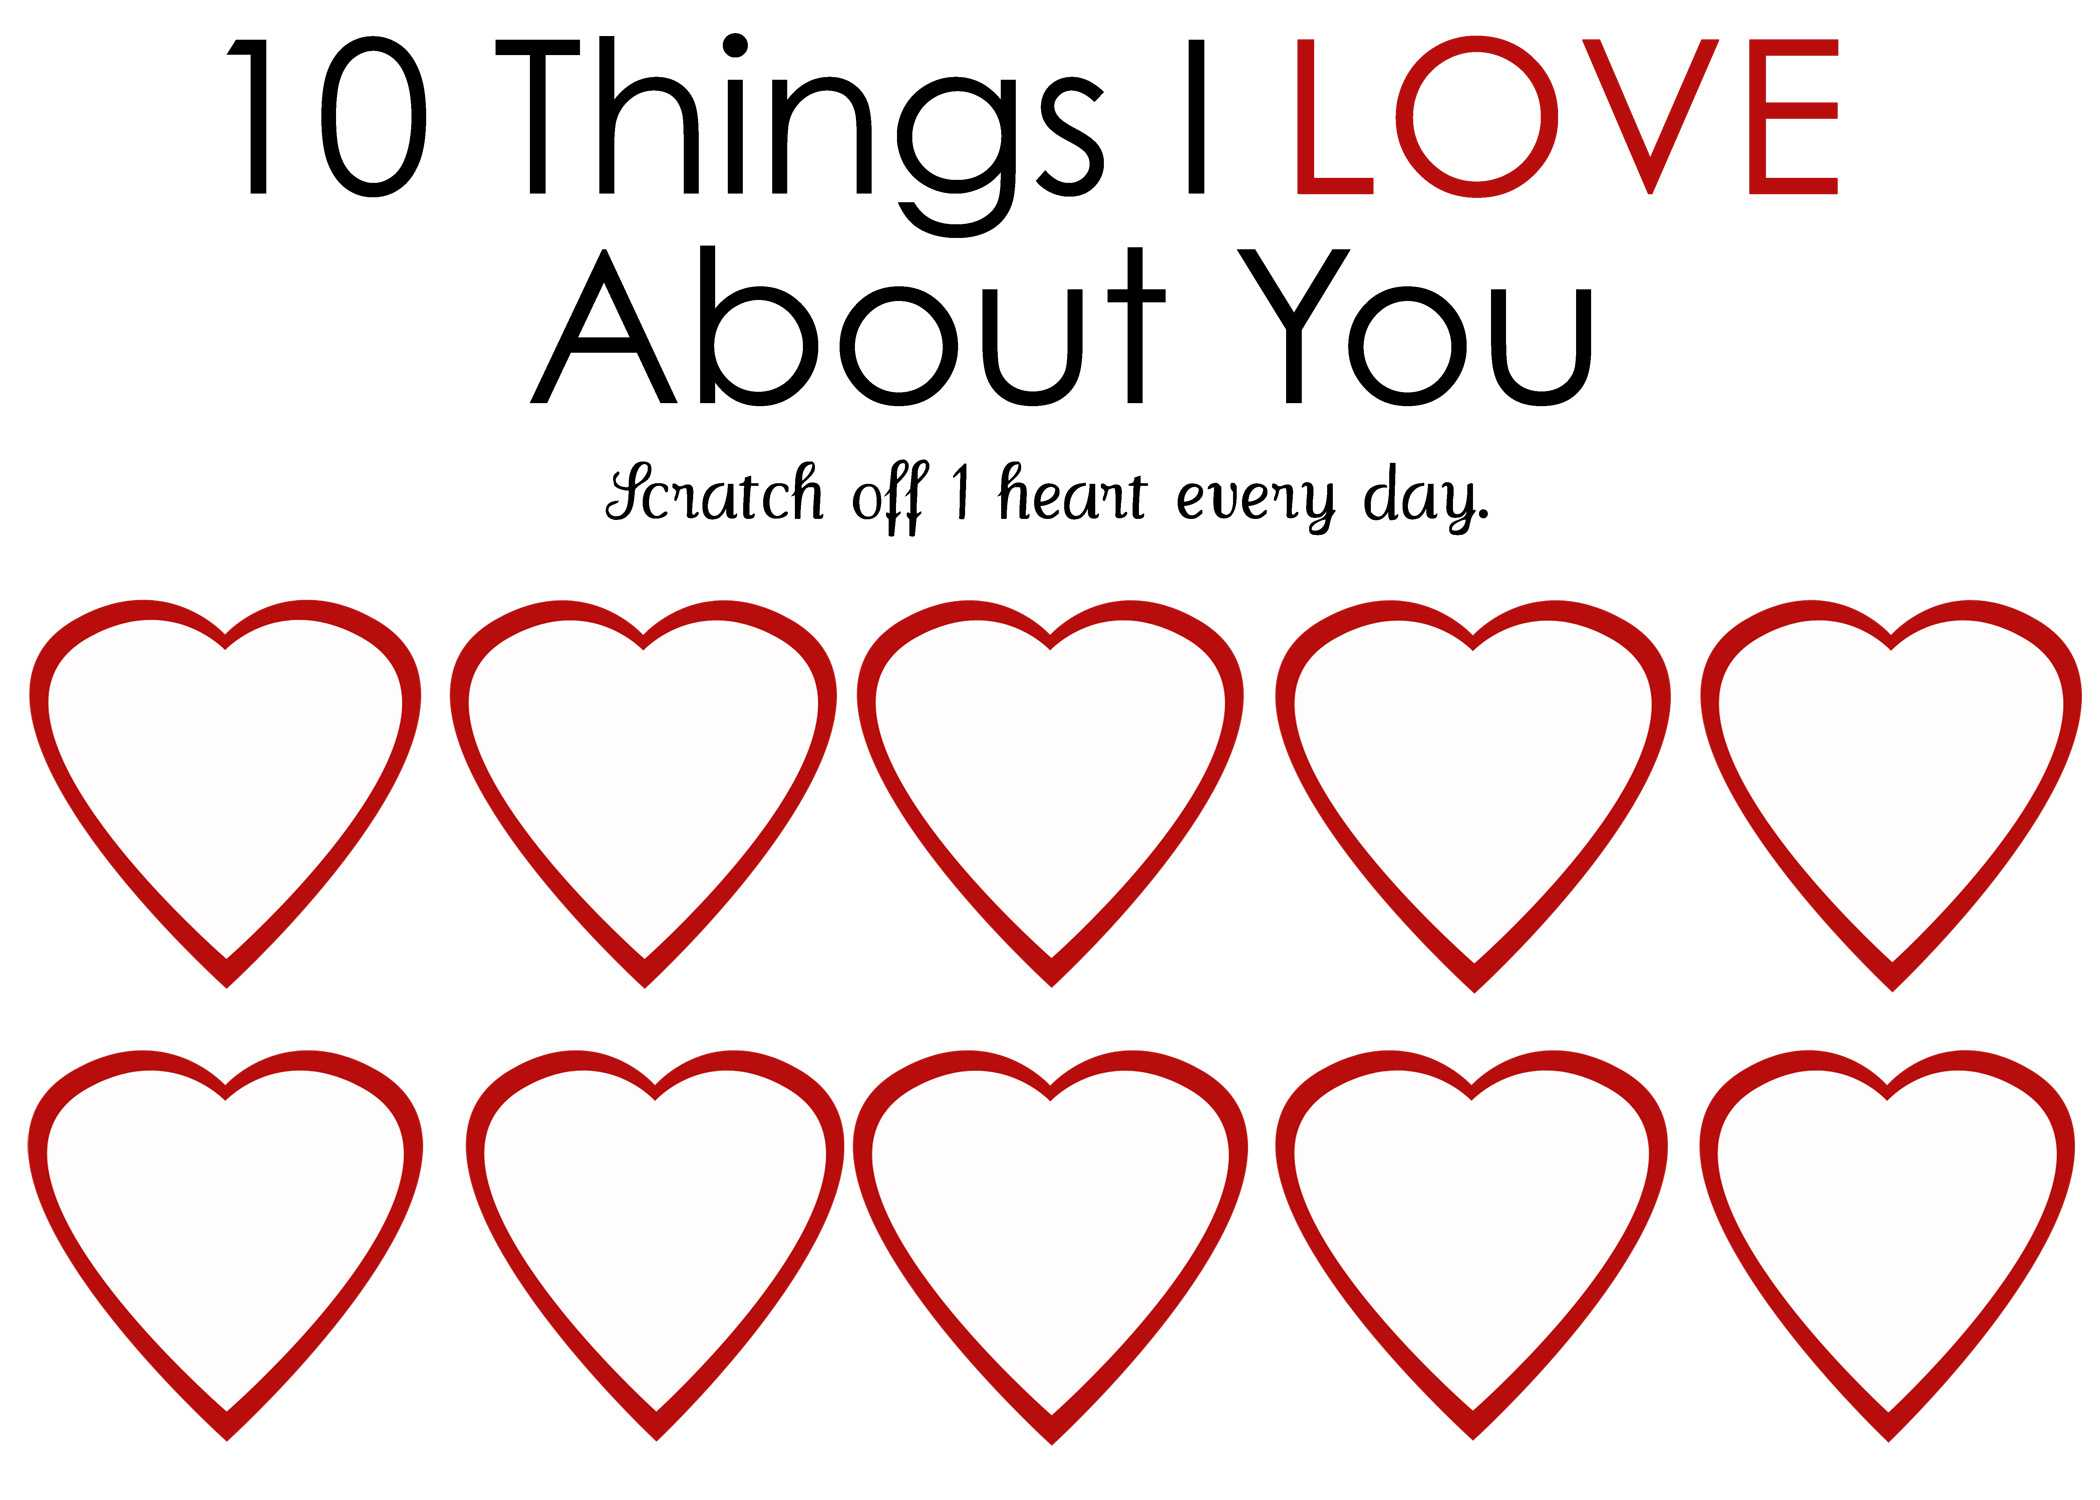 Printable Scratch Off Card {Easy Peasy Valentine} Within Scratch Off Card Templates